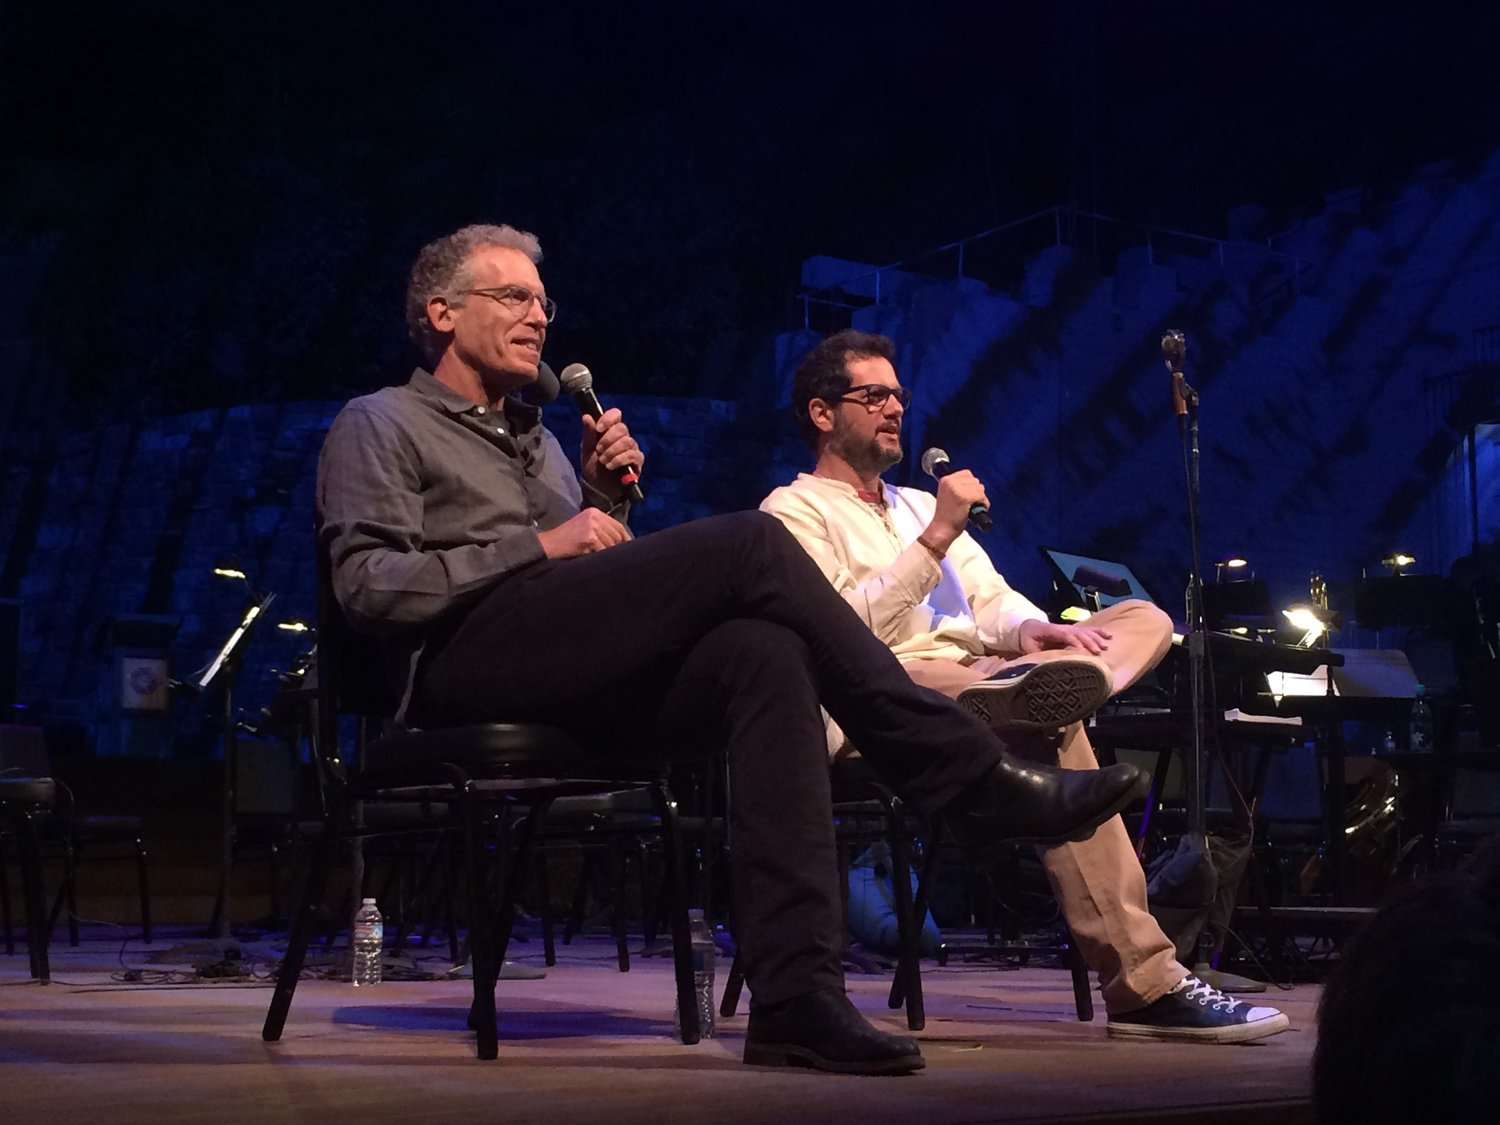 Watch Michael Giacchino Conducting Lost Music Live In Concert